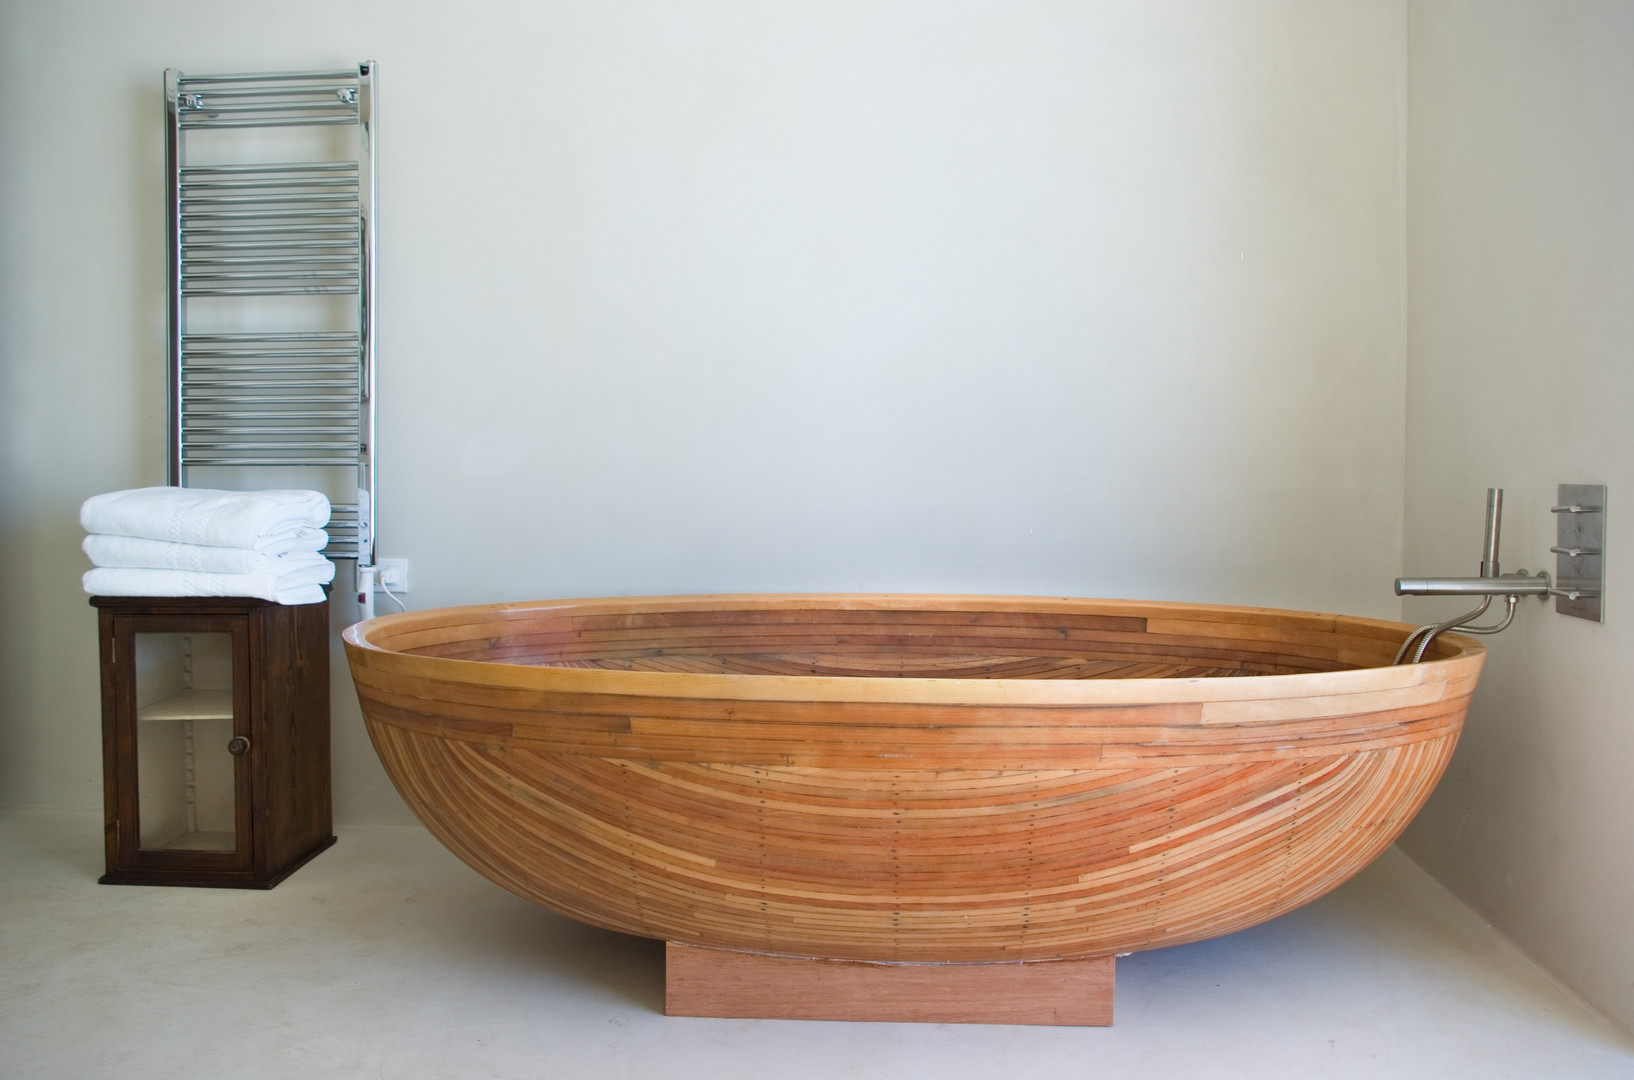 N CANOE BATHTUB.JPG